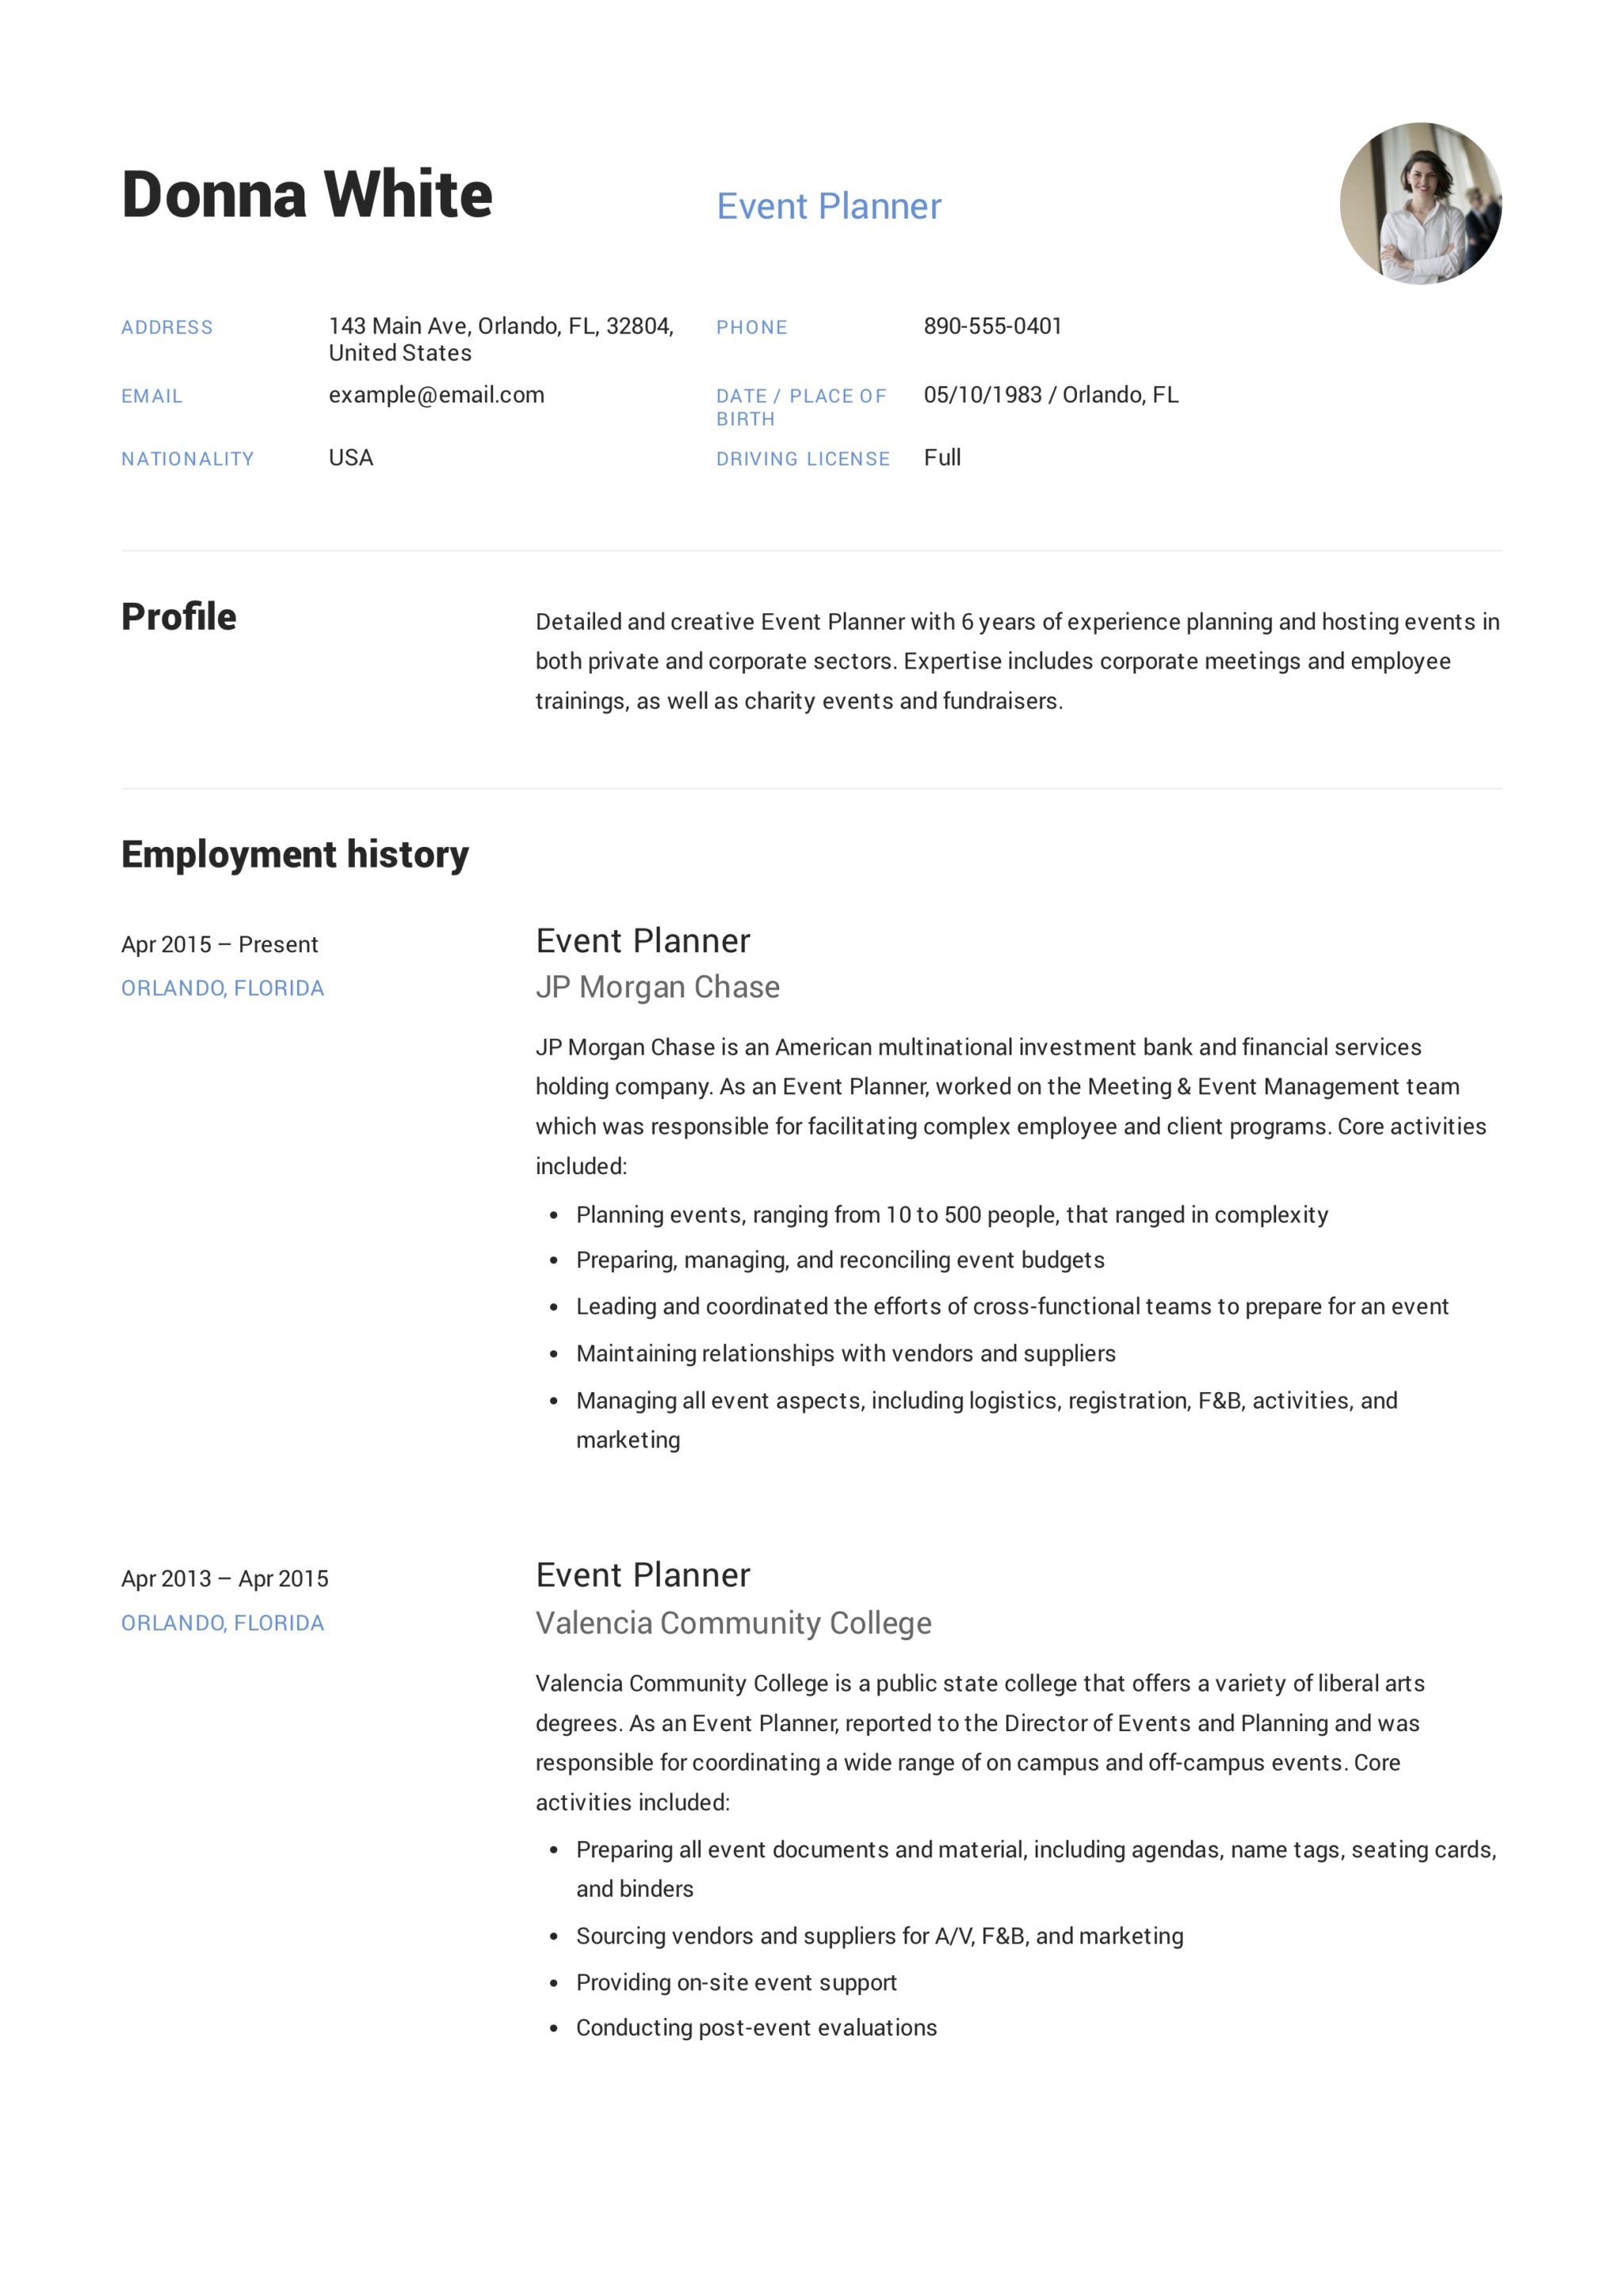 Wedding Planner Resume Sample Guide Event Planner Resume 43 12 Samples Pdf And Word